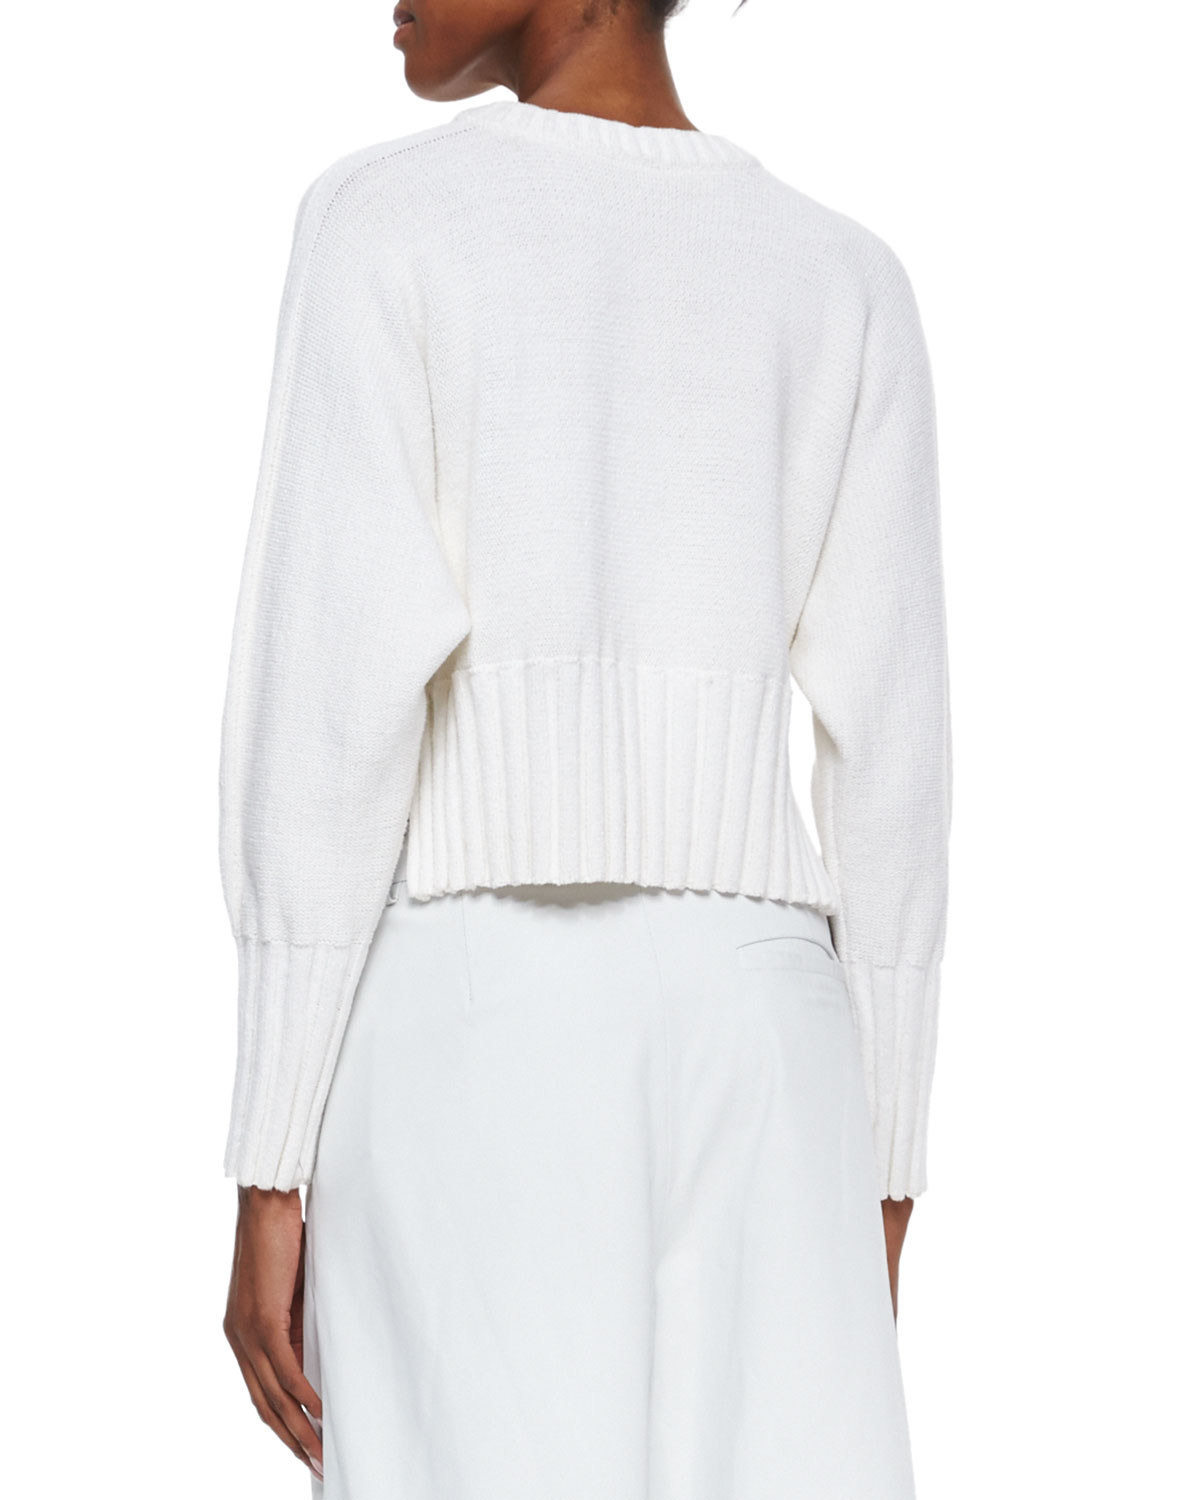 T by alexander wang Chunky Knit Cropped Pullover Sweater in White ...